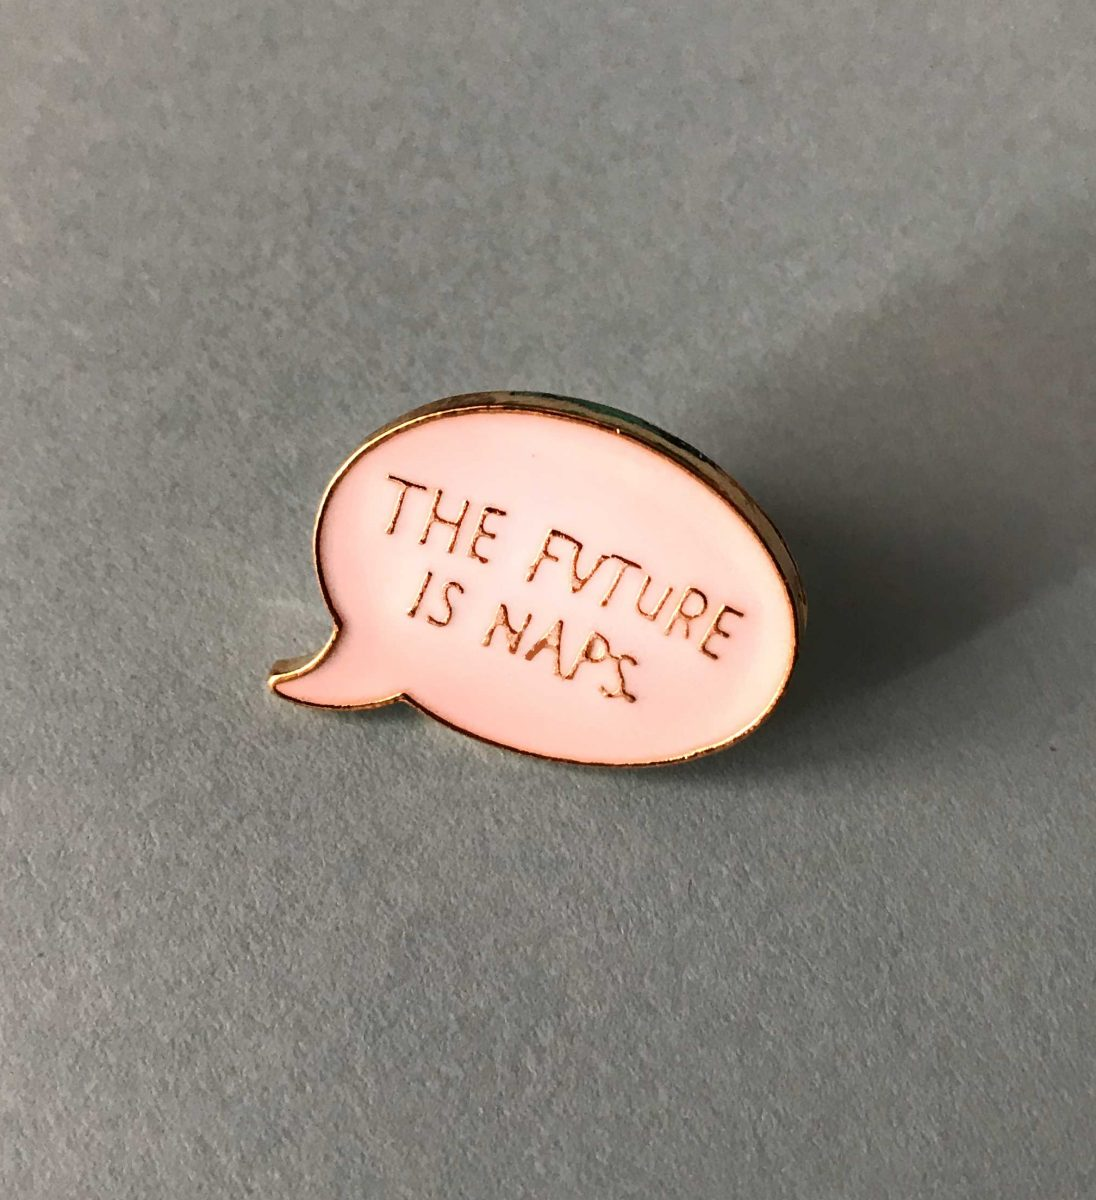 Pin de The Future is Naps